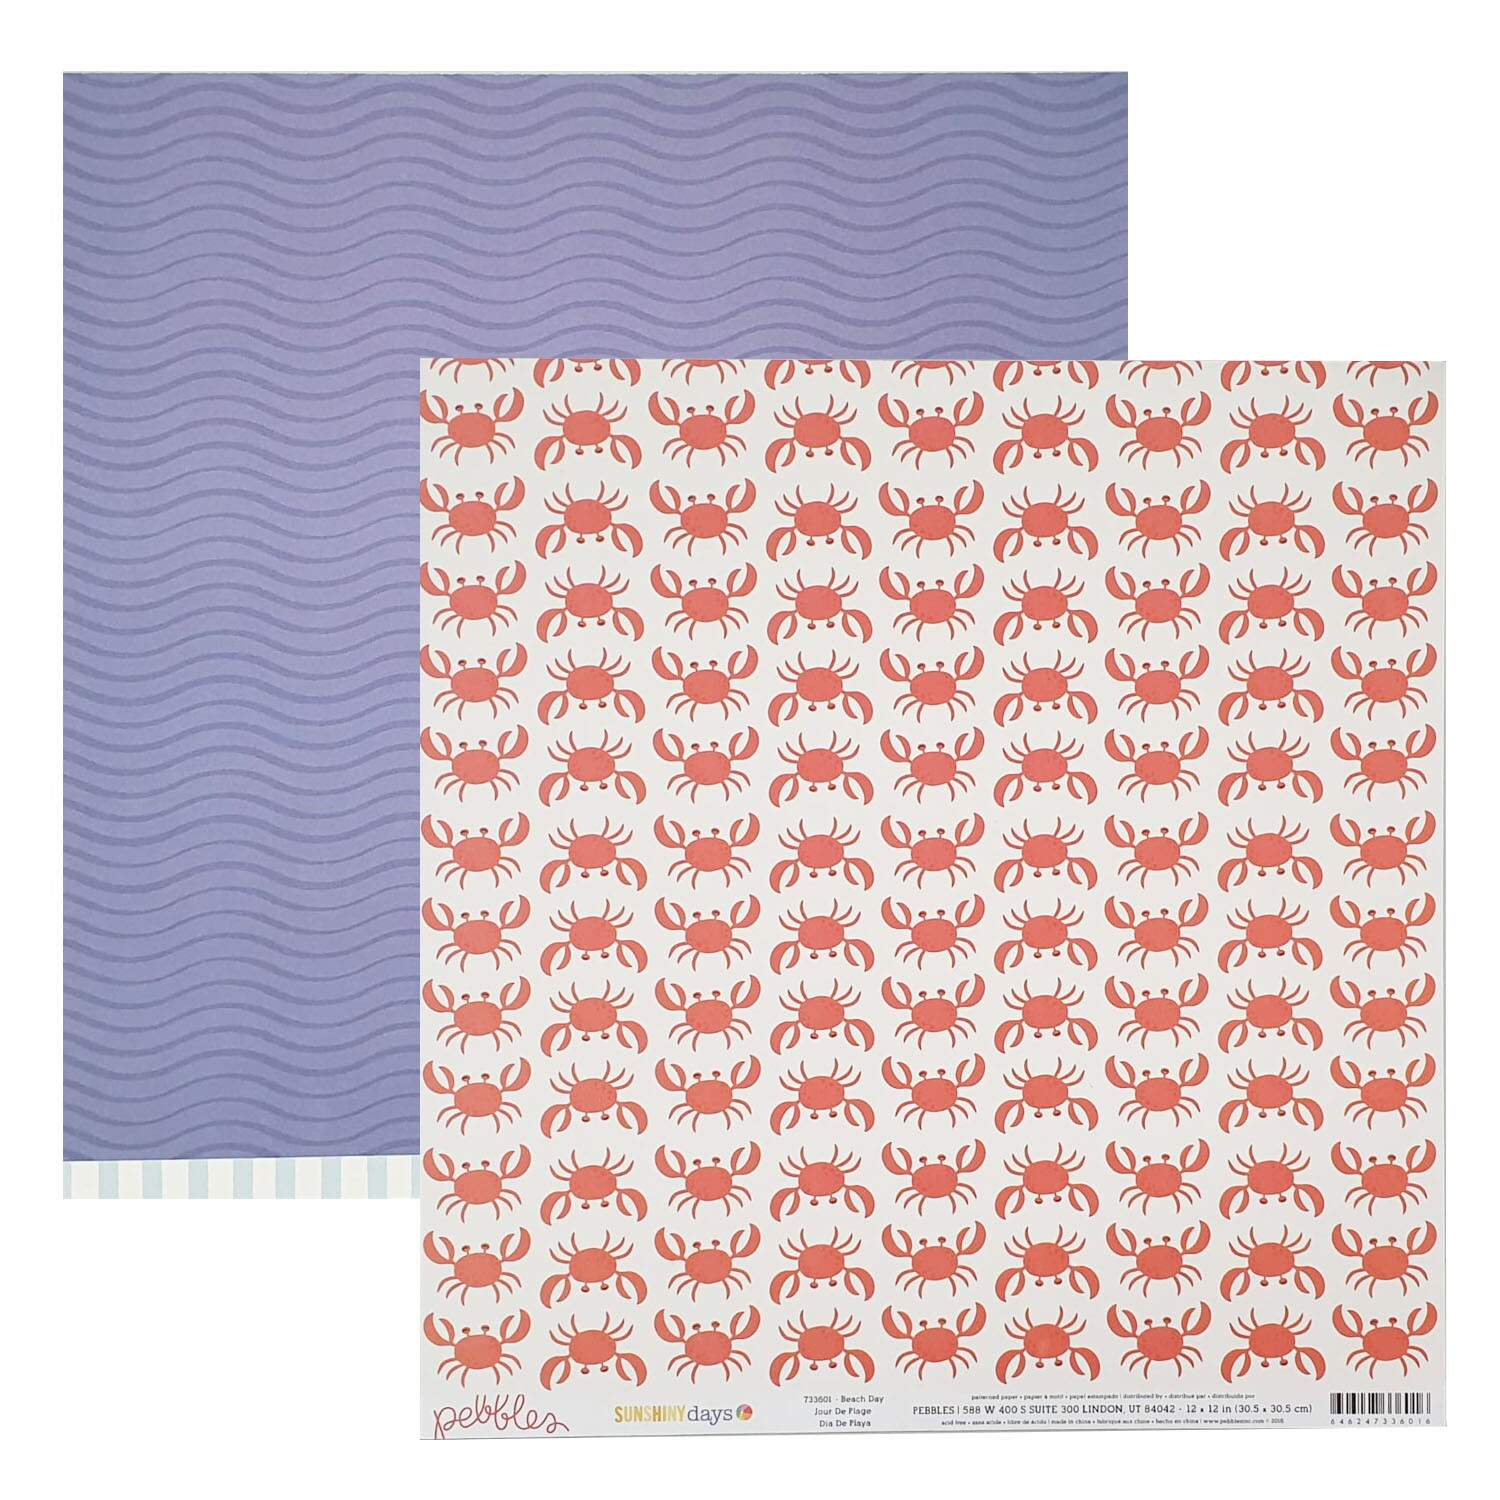 Papel Beach Day - Sunshiny Days - Pebbles Collection 180g 30,5x30,5